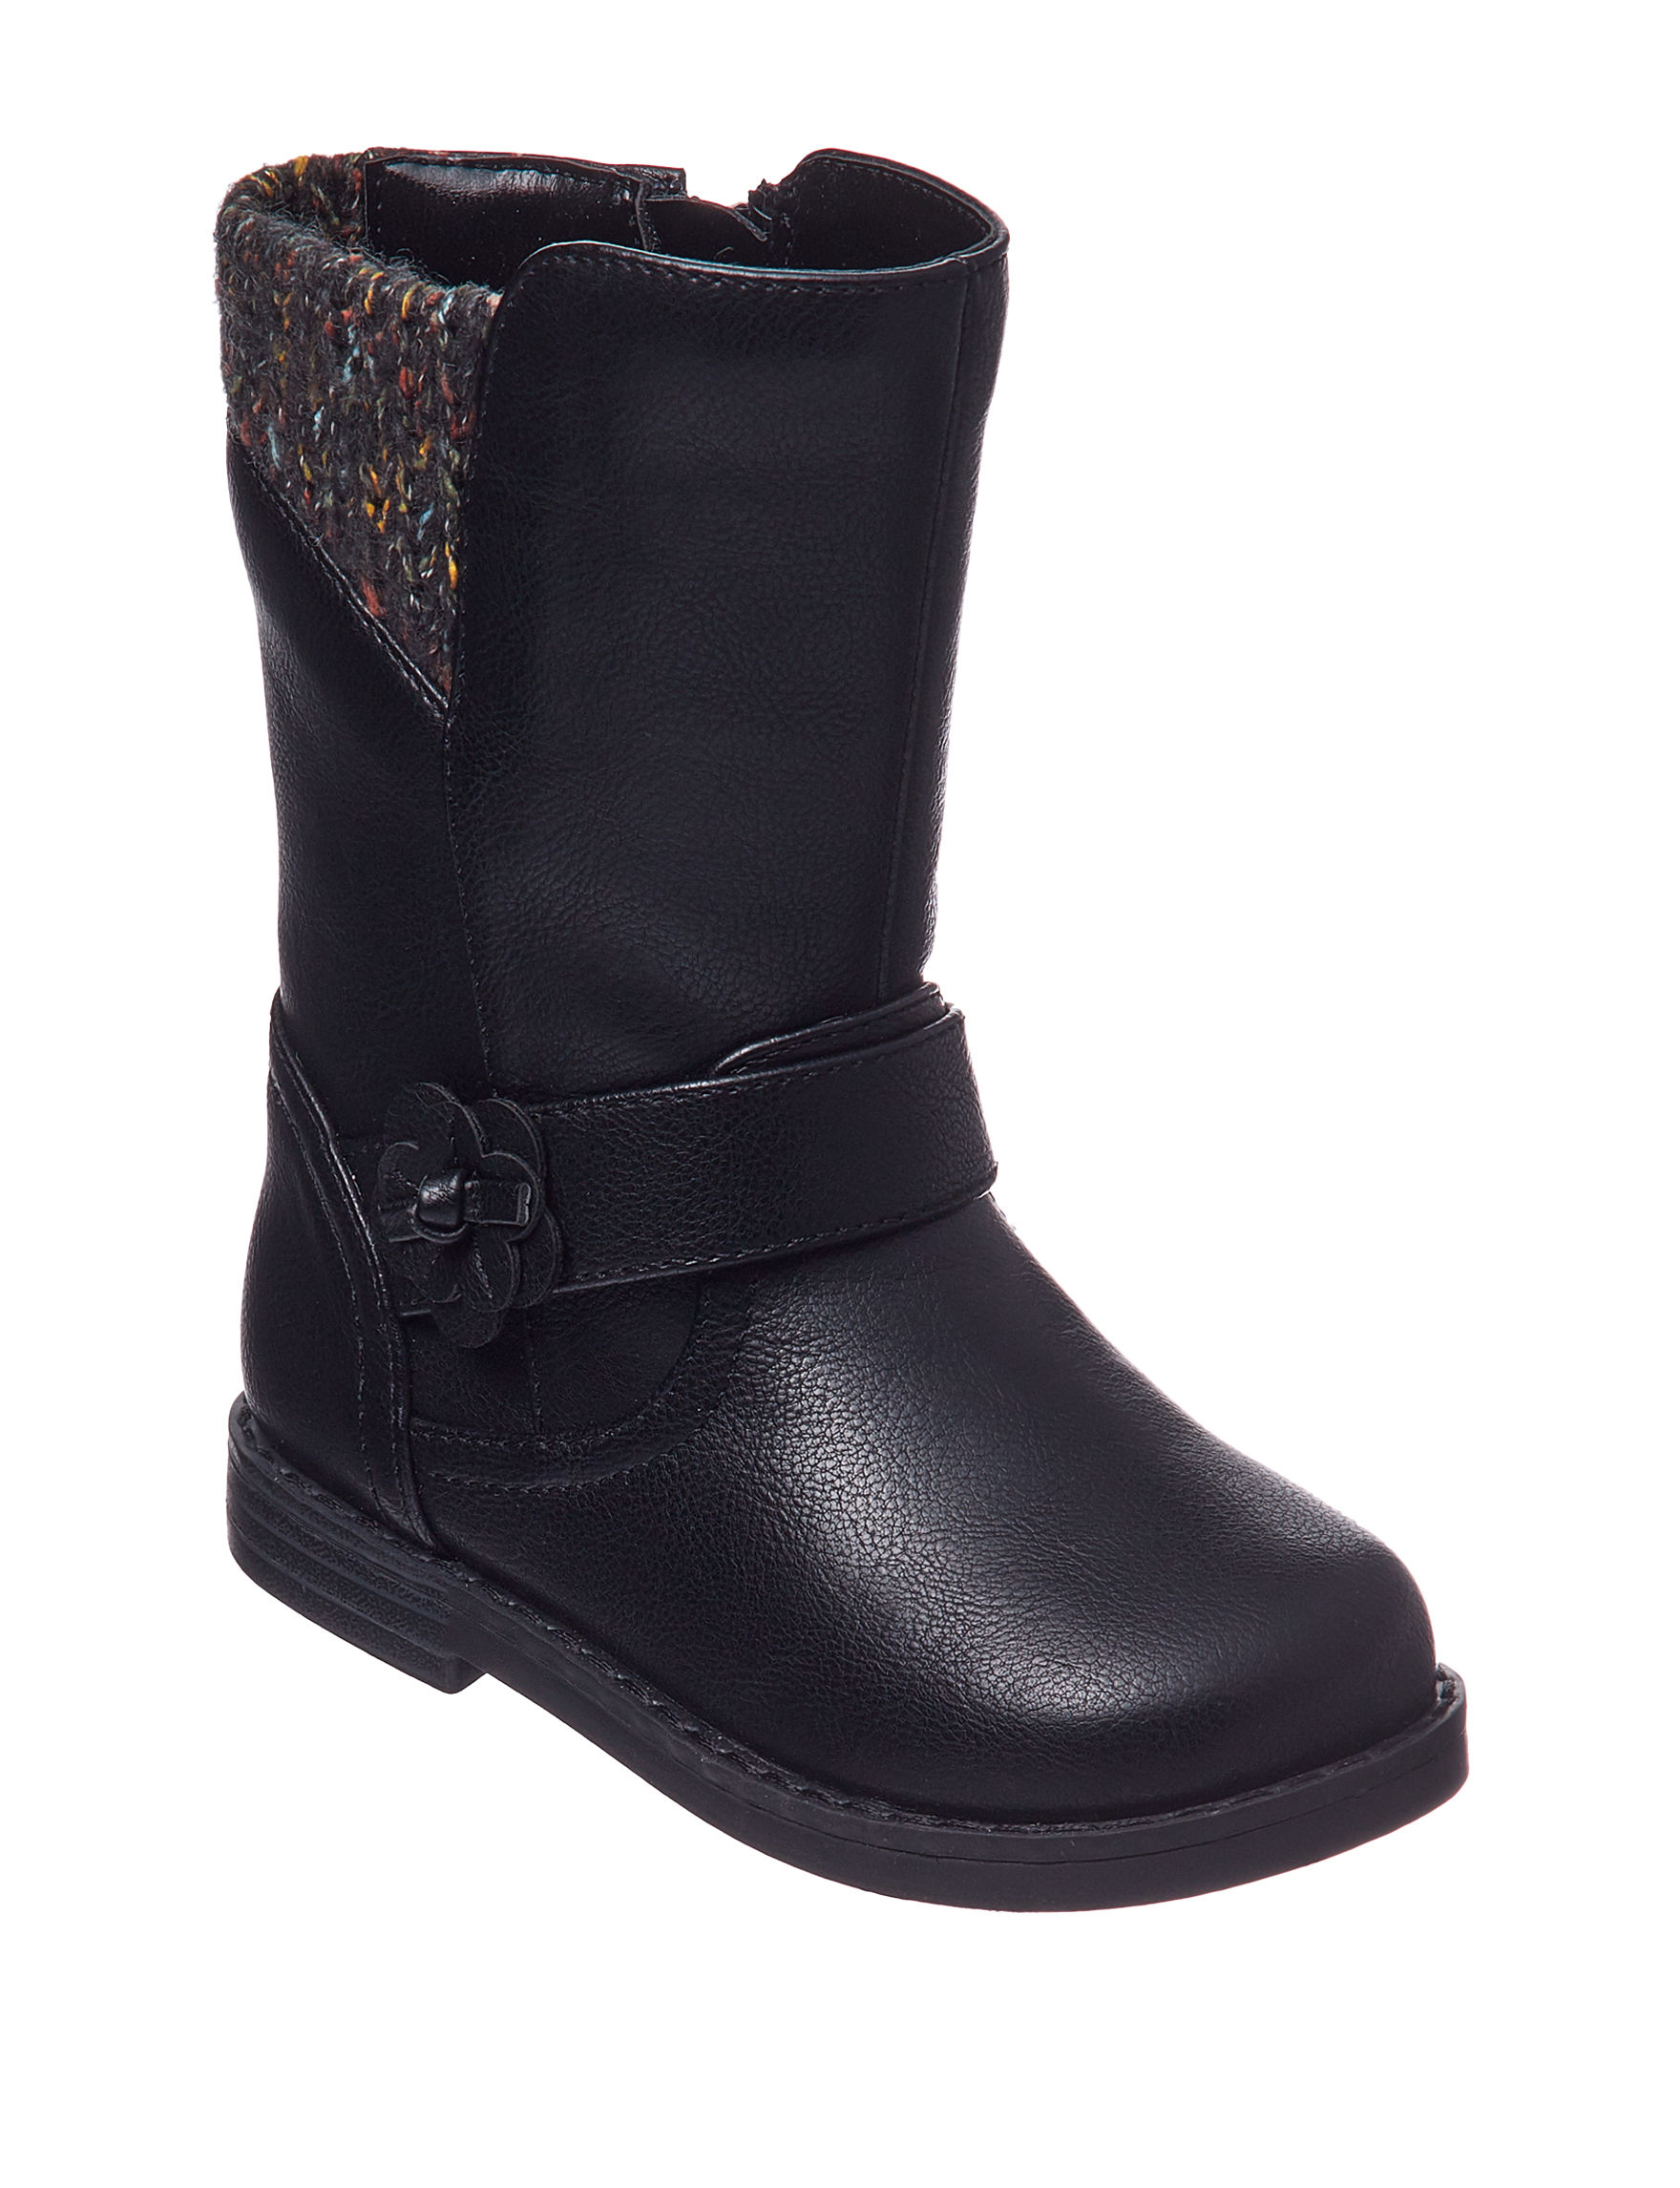 Specialty Girl Black Riding Boots